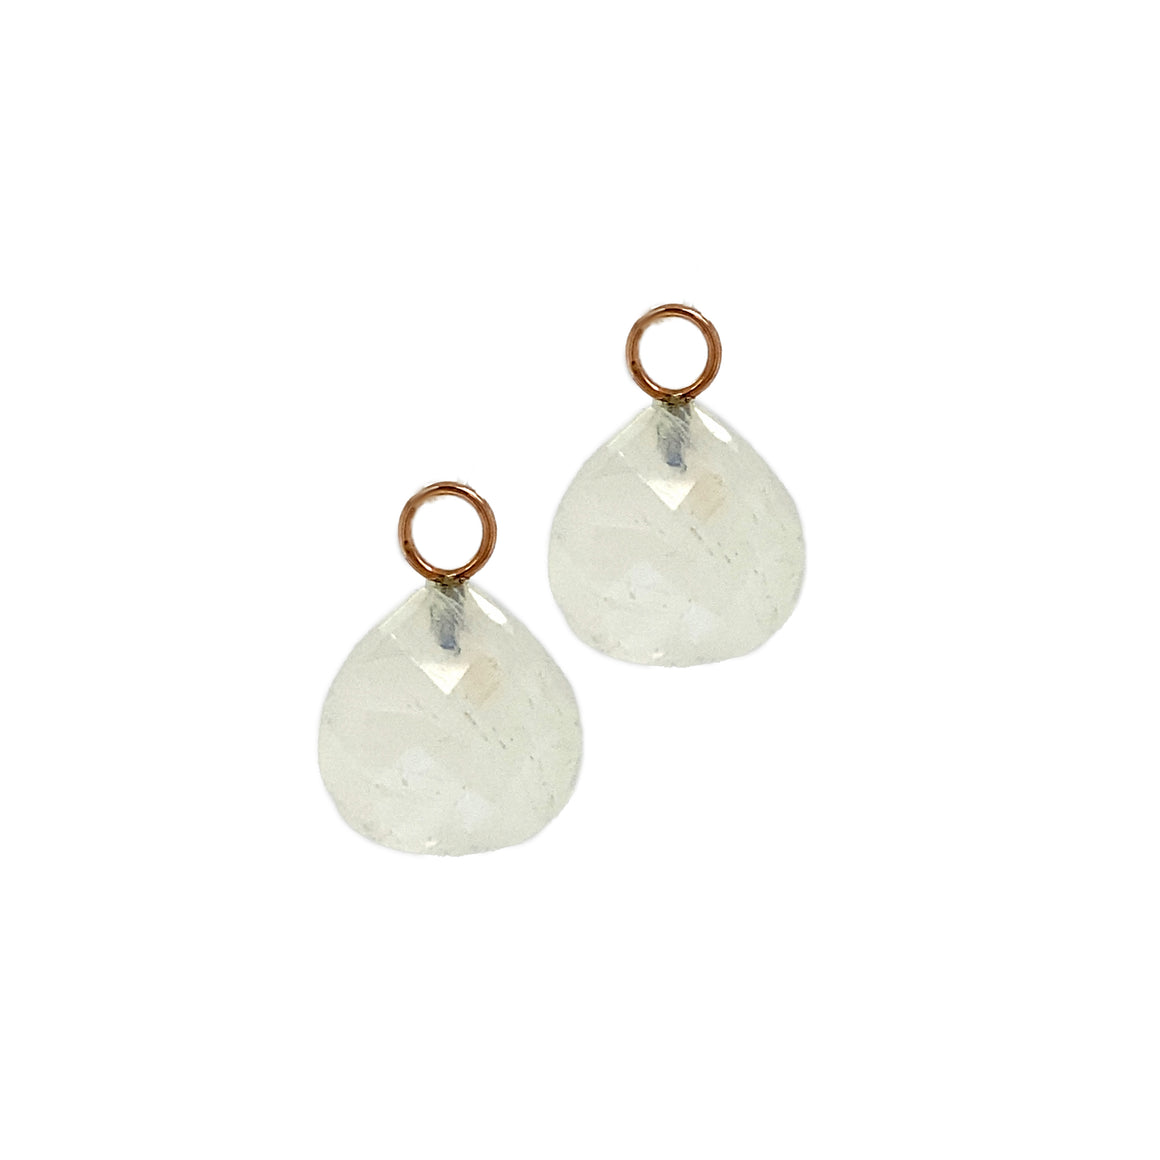 Moonstone Earring Charms